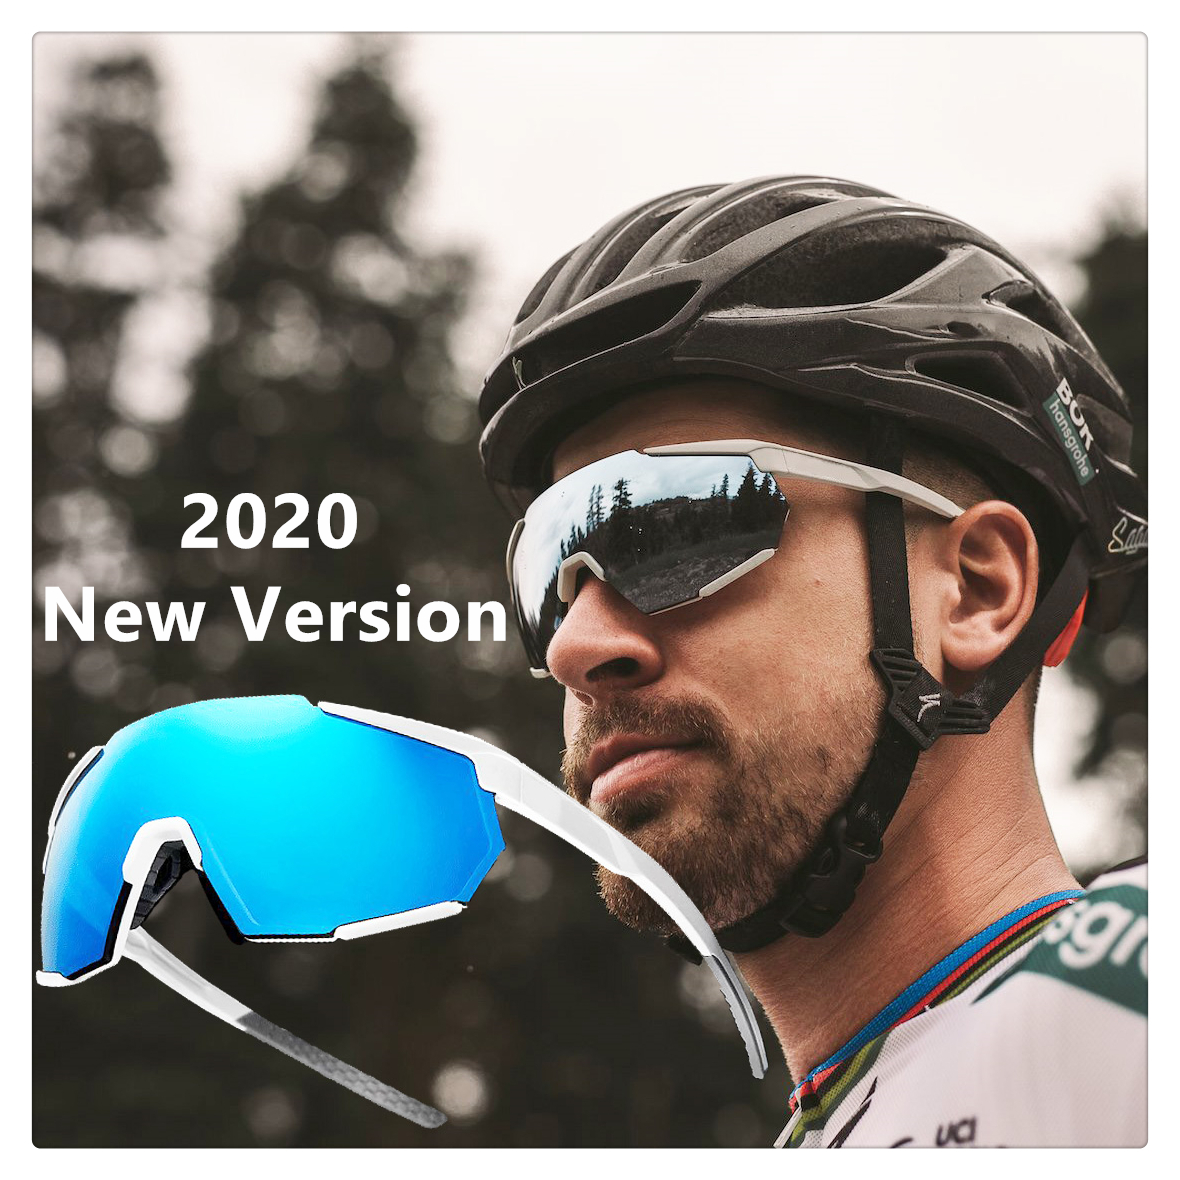 2020 Peter Limited 100 RP Sports Bicycle Bike Sunglasses Gafas Ciclismo MTB Cycling Glasses Eyewear Sunglasses Racetrap100Cycling Eyewear   -